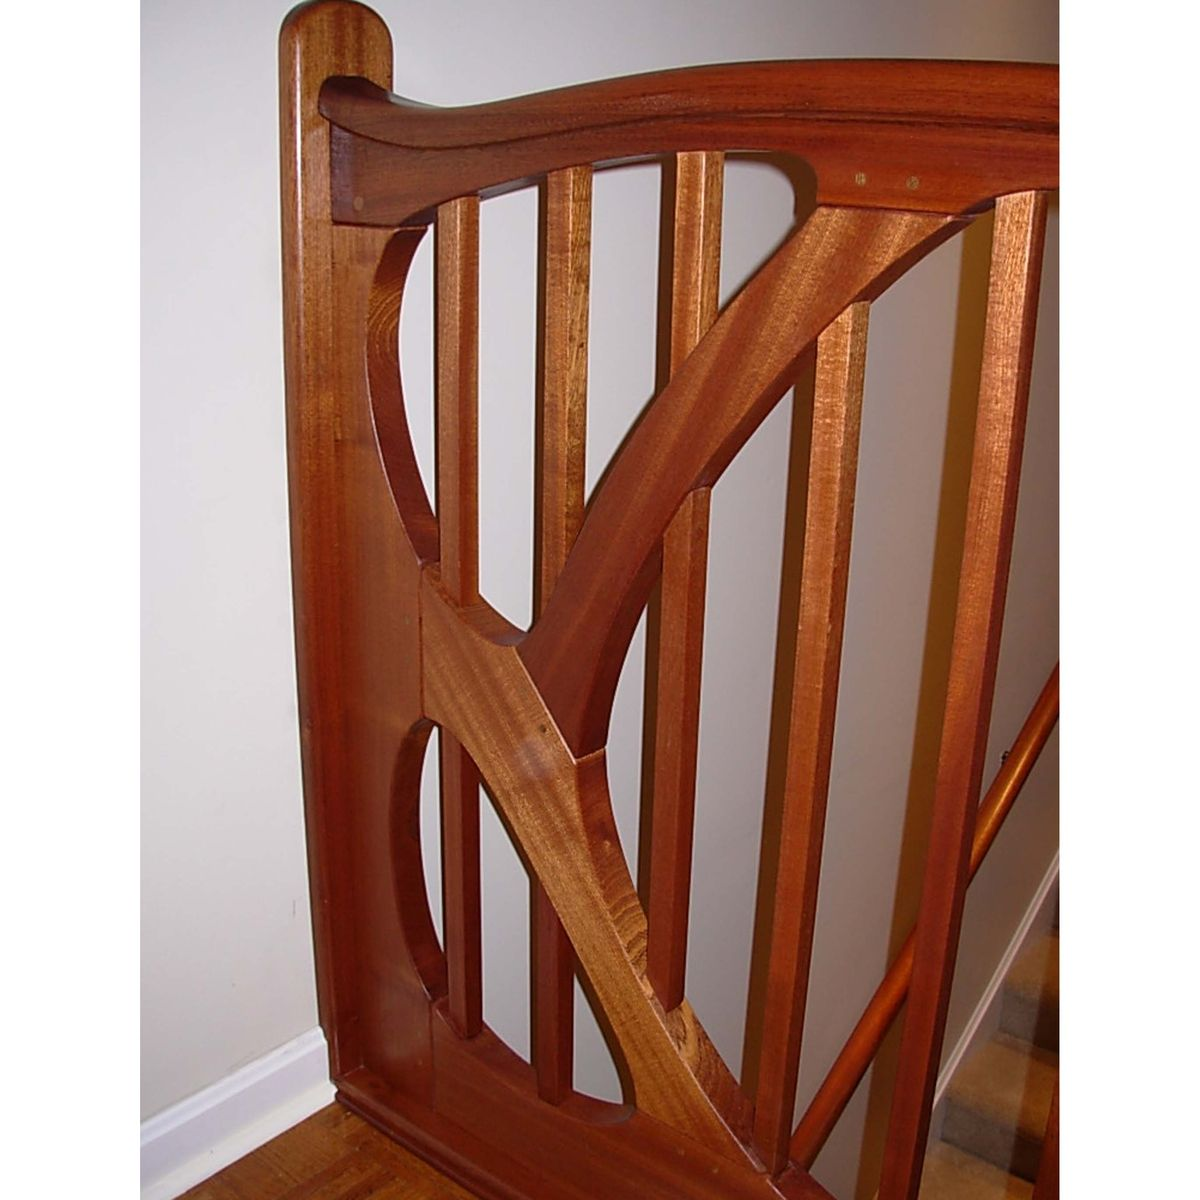 Best Art Nouveau Stair Railing Wood Railings For Stairs 400 x 300